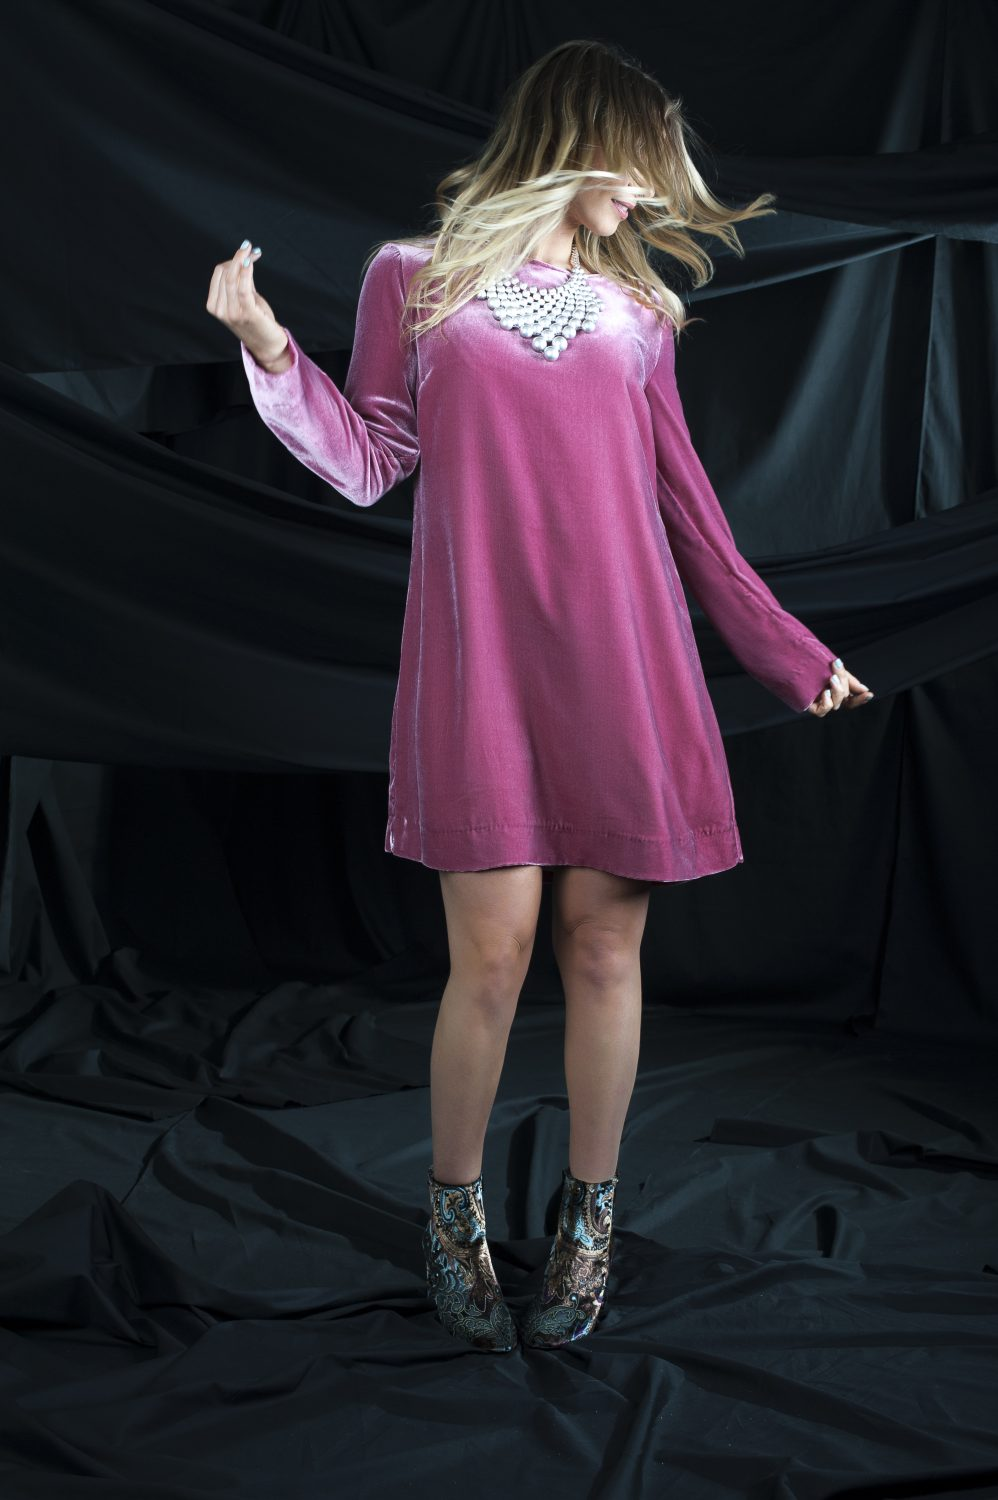 120% velvet dress, £259, Niche, Rye, niche-online.co.uk 01797 225 294; Guglielmo Rotta boots, £245, Golden Boot thegoldenboot.co.uk 01622 752349; pearl necklace, £29, Who's Wearing What Boutique, St Leonards whoswearingwhat-boutique.co.uk 01424 272925